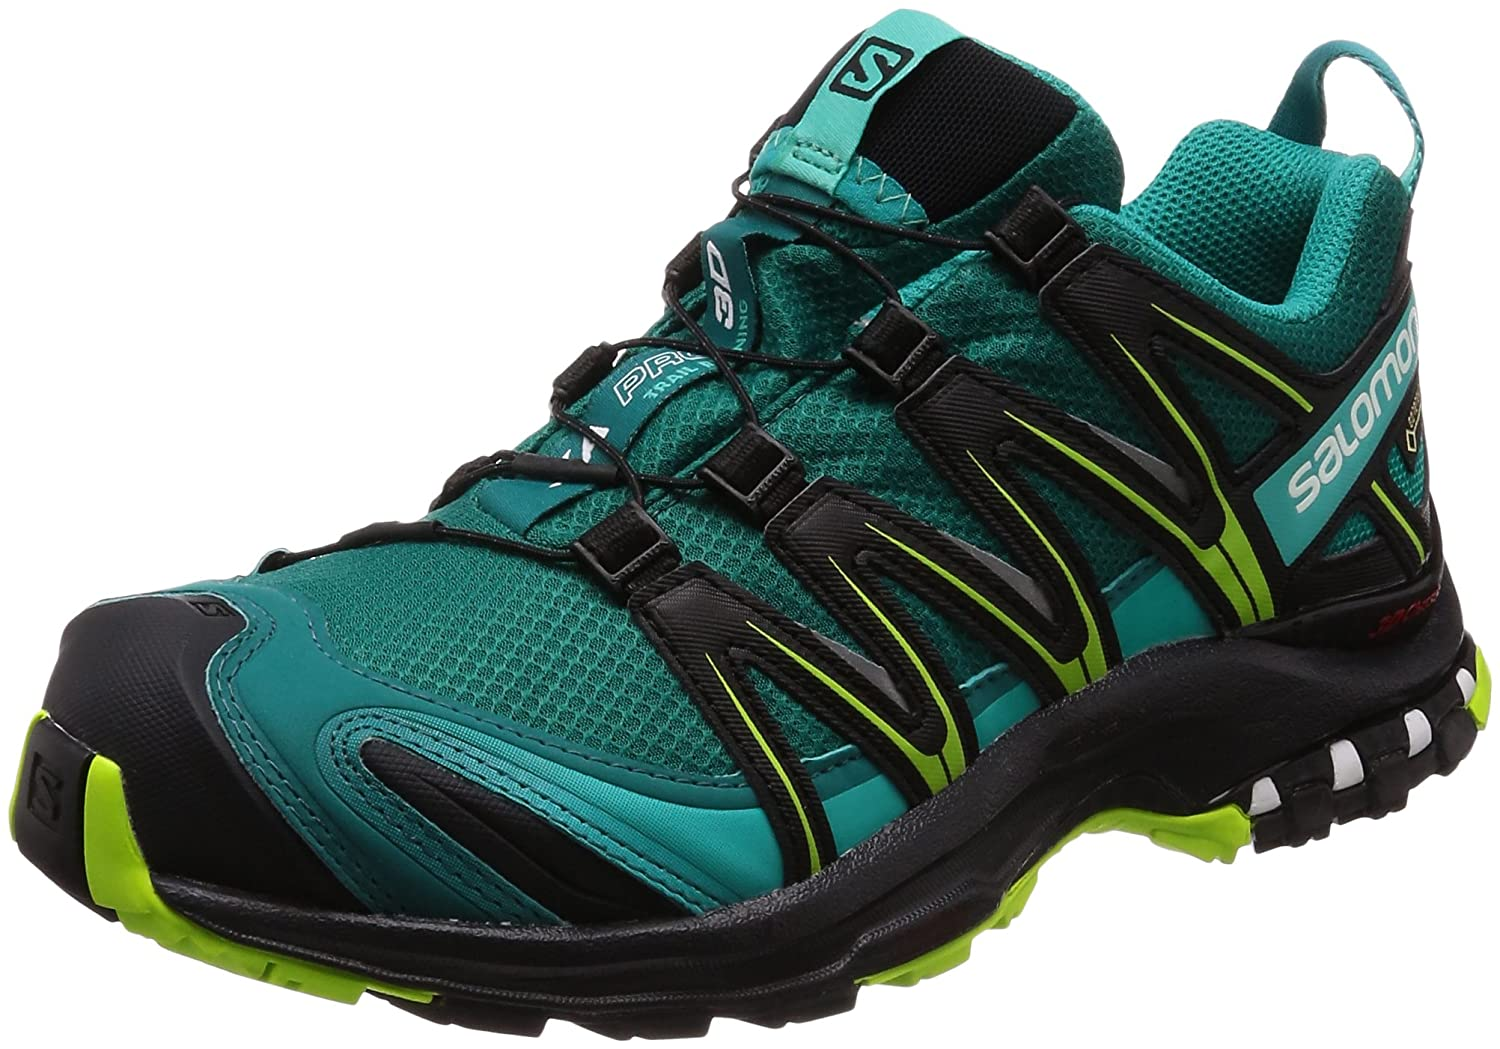 Salomon XA Pro 3D GTX W, Zapatillas de Trail Running para Mujer 38 EU|Azul (Deep Lake/Black/Lime Green)